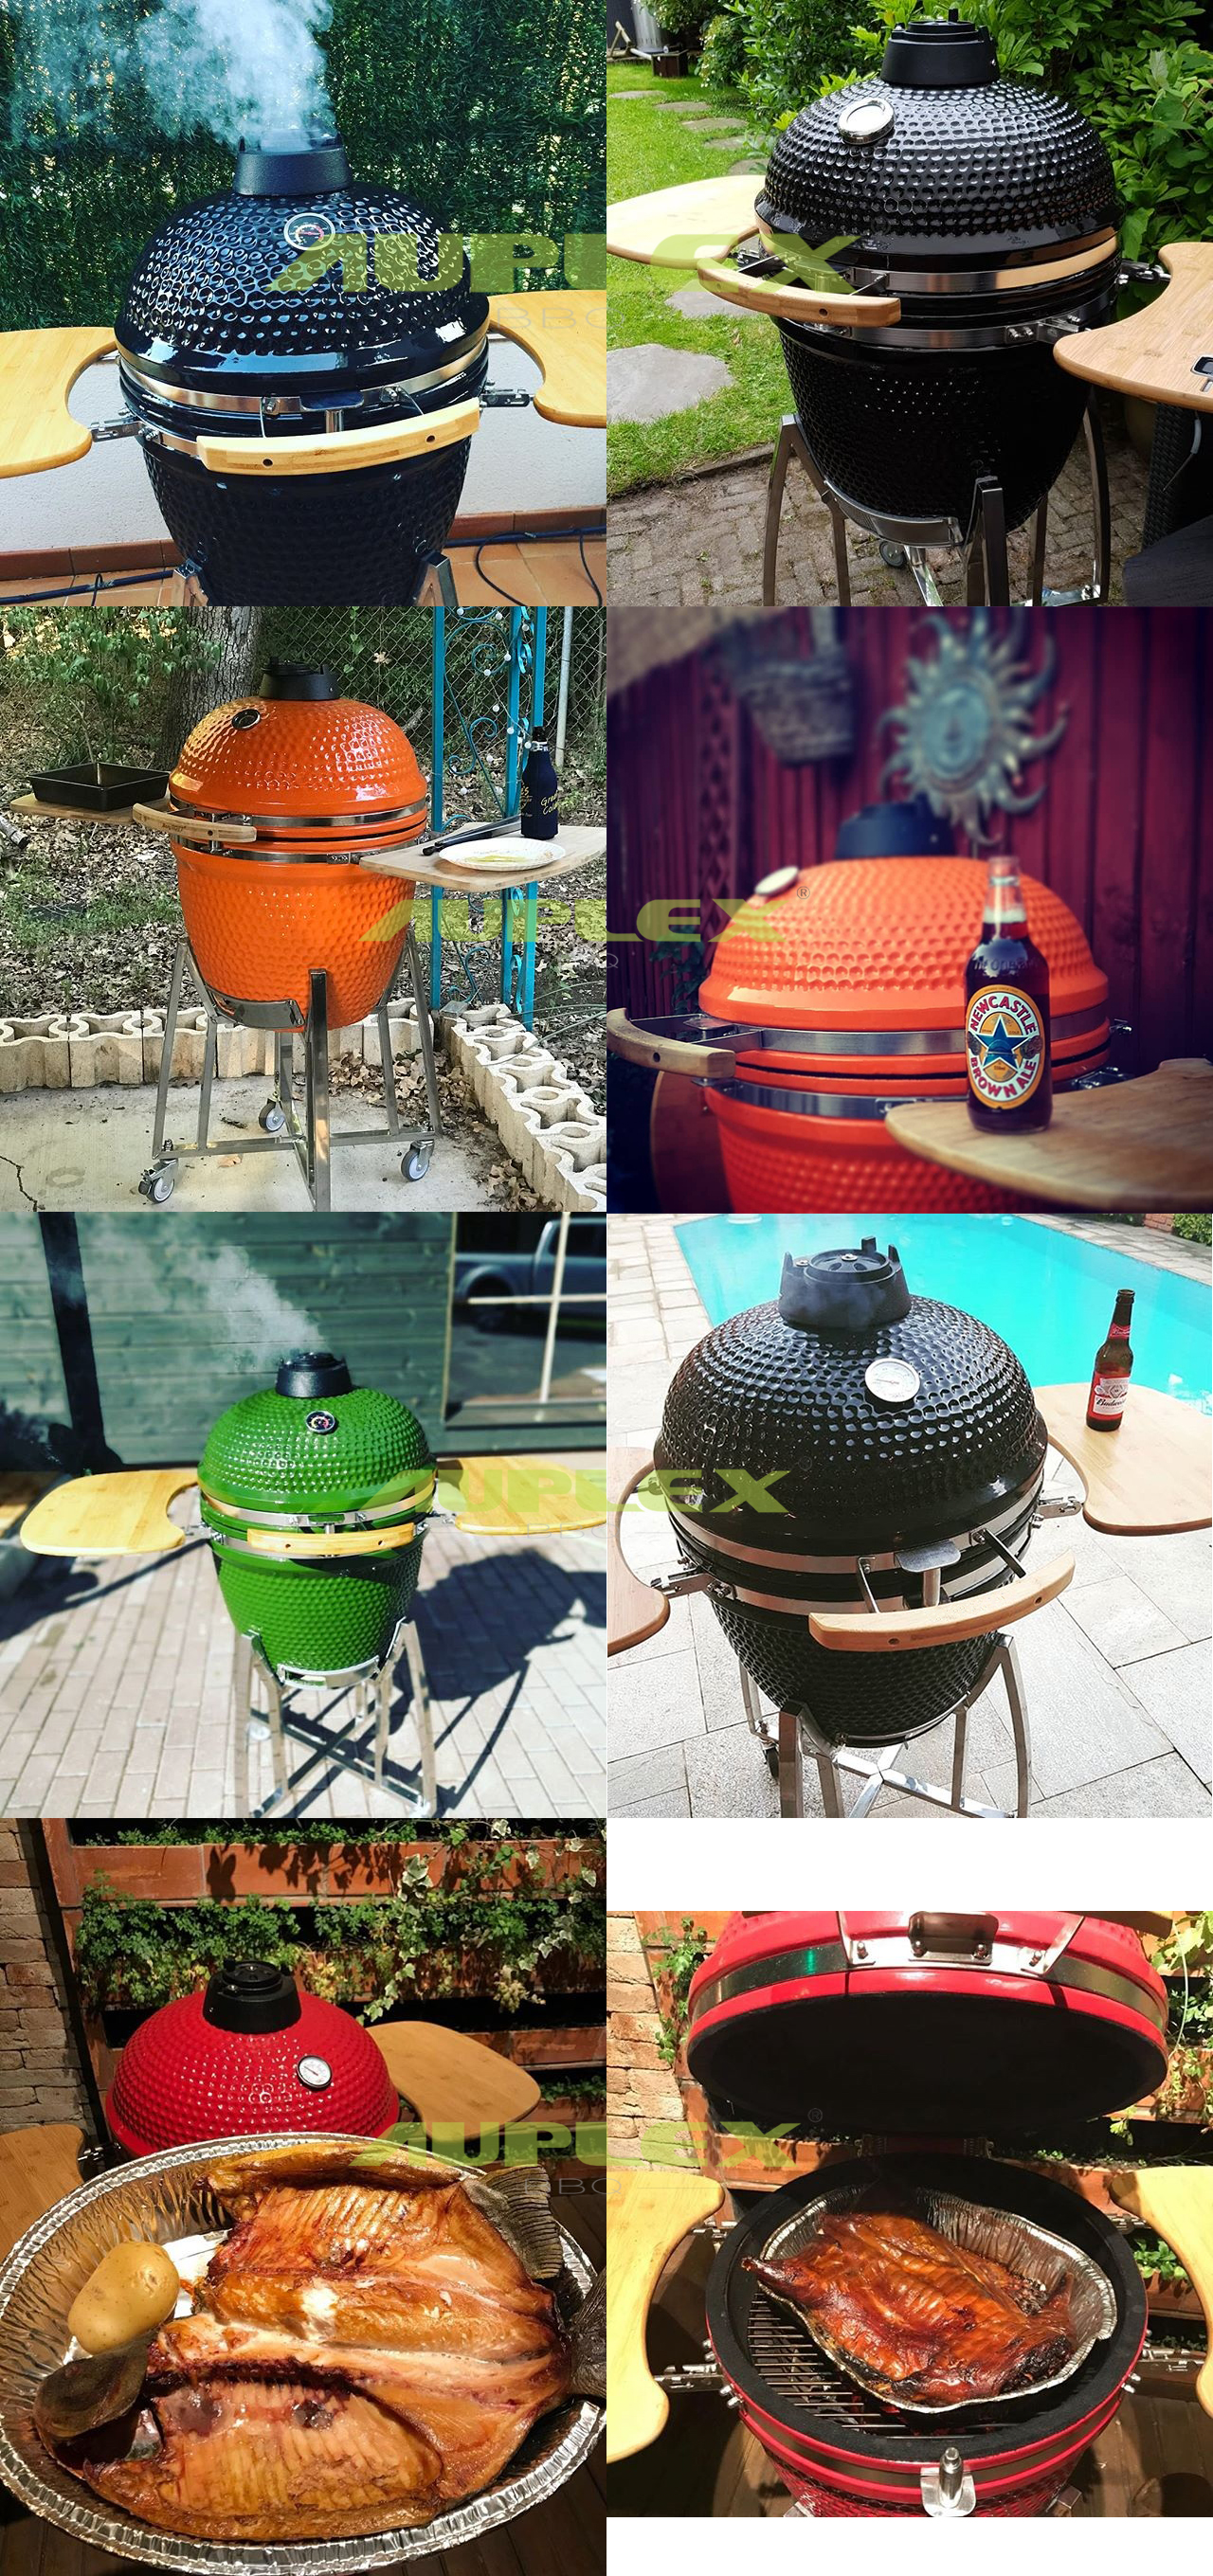 Garden Furniture Outdoor 21 Inch Used Kamado Big Egg With Cart